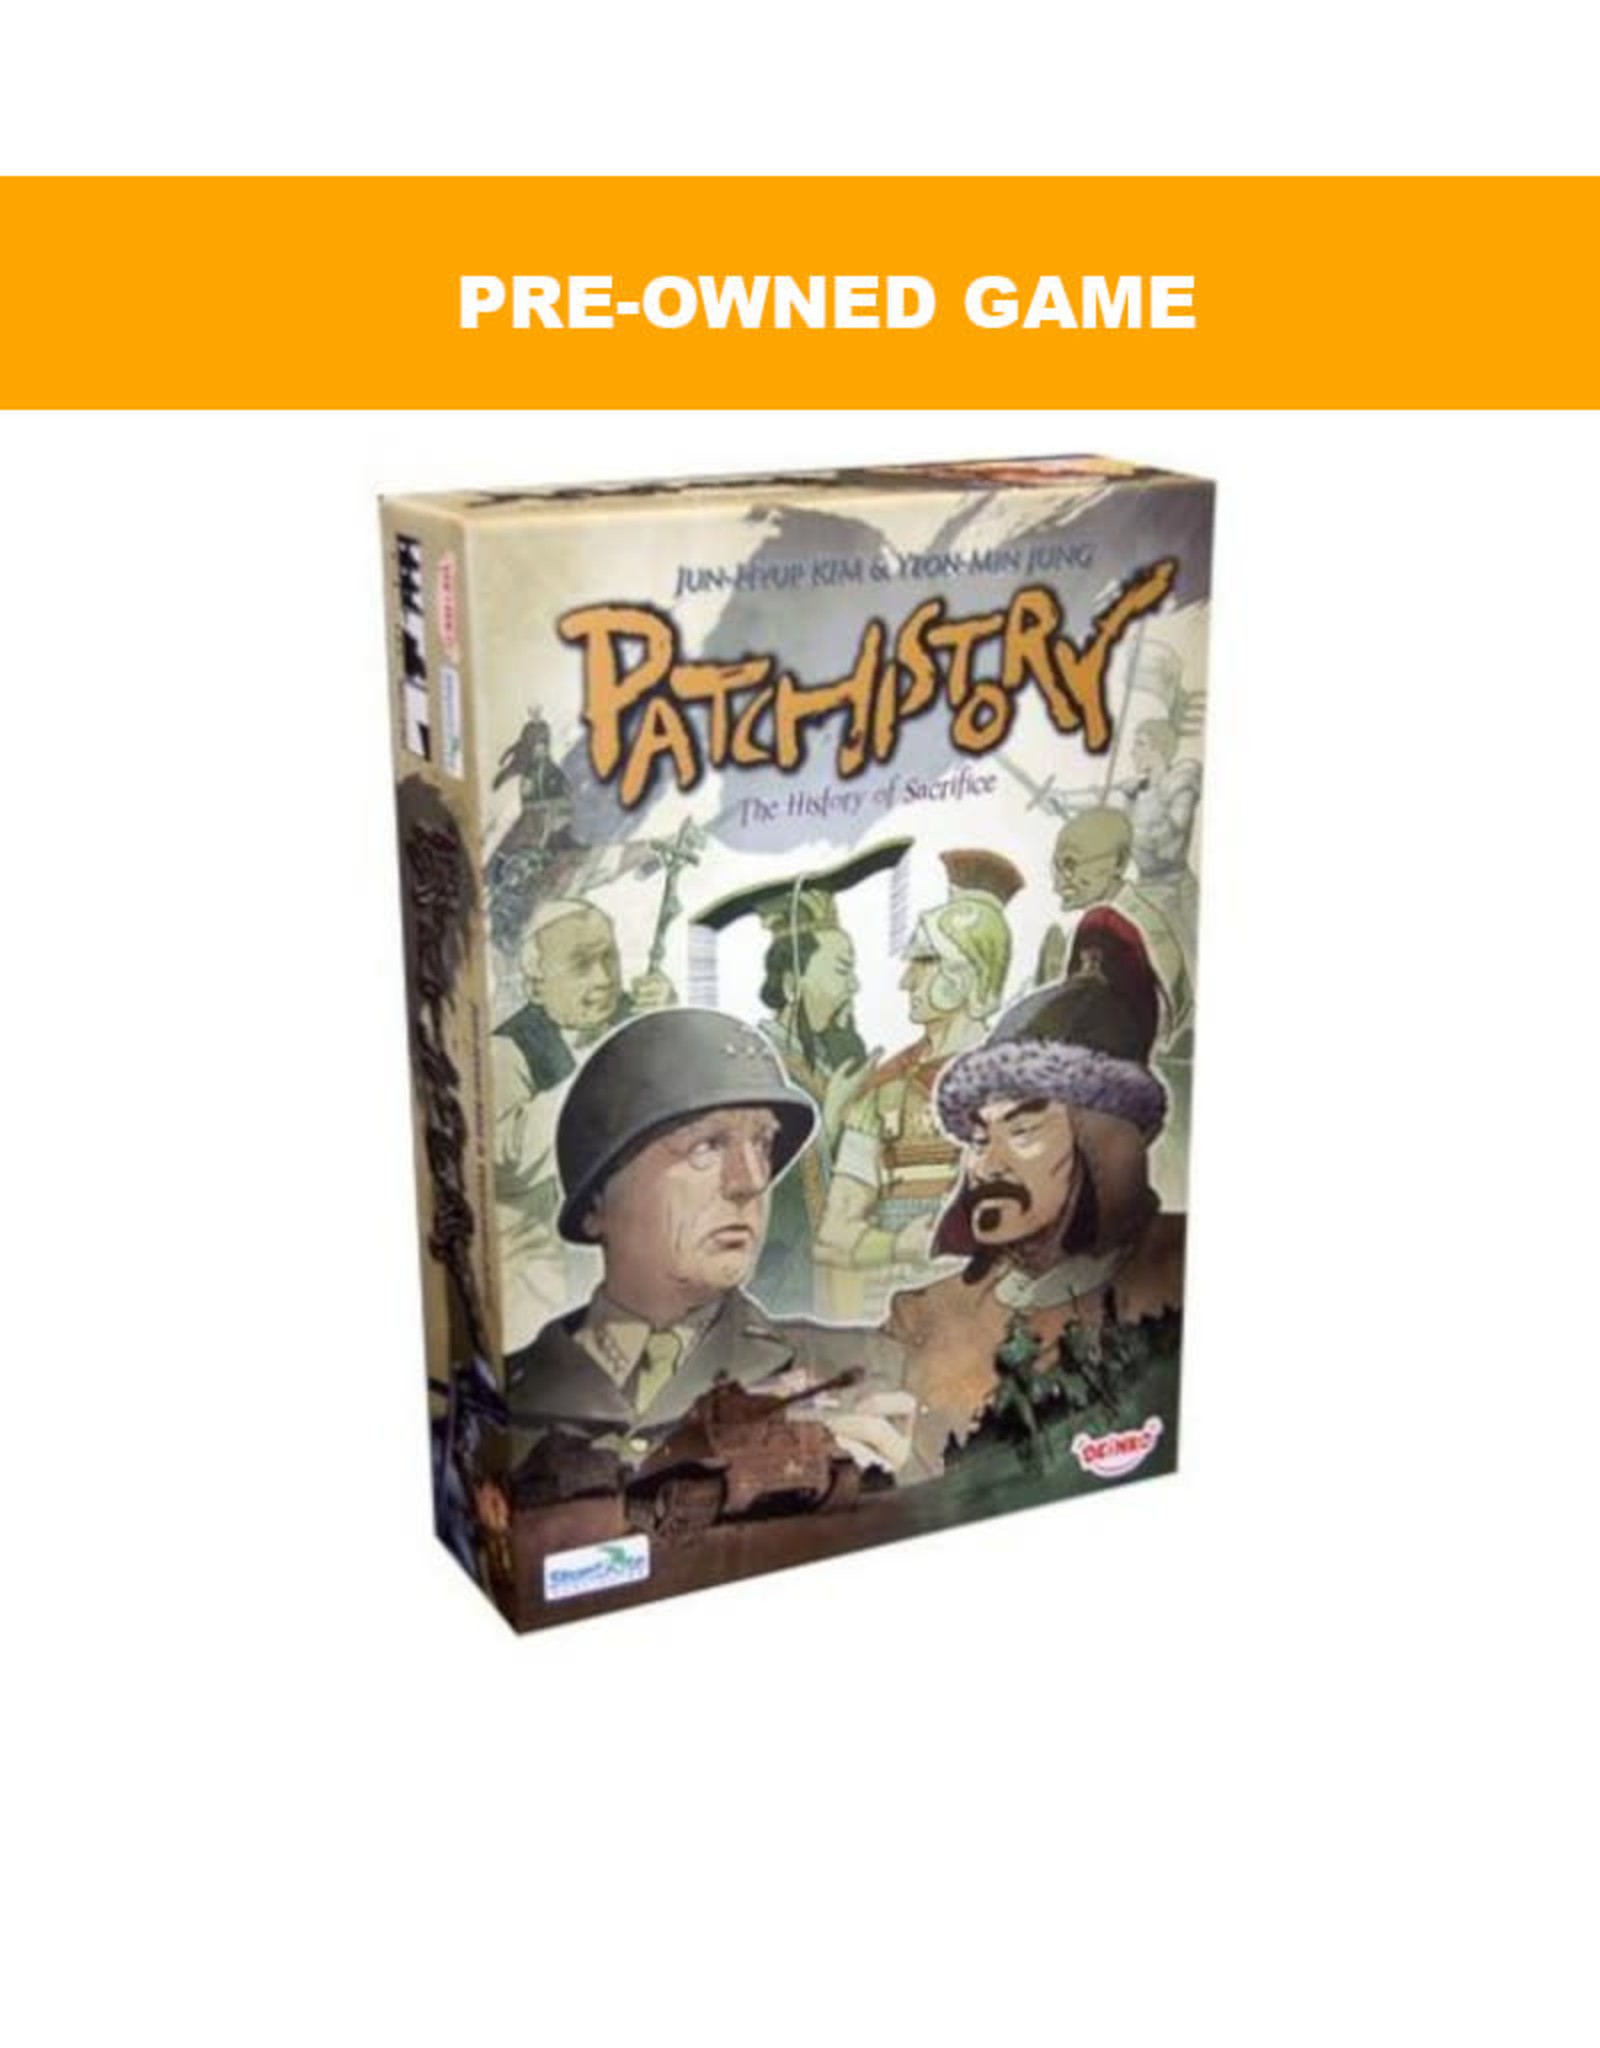 Game Night Games (Pre-Owned Game) Patchistory